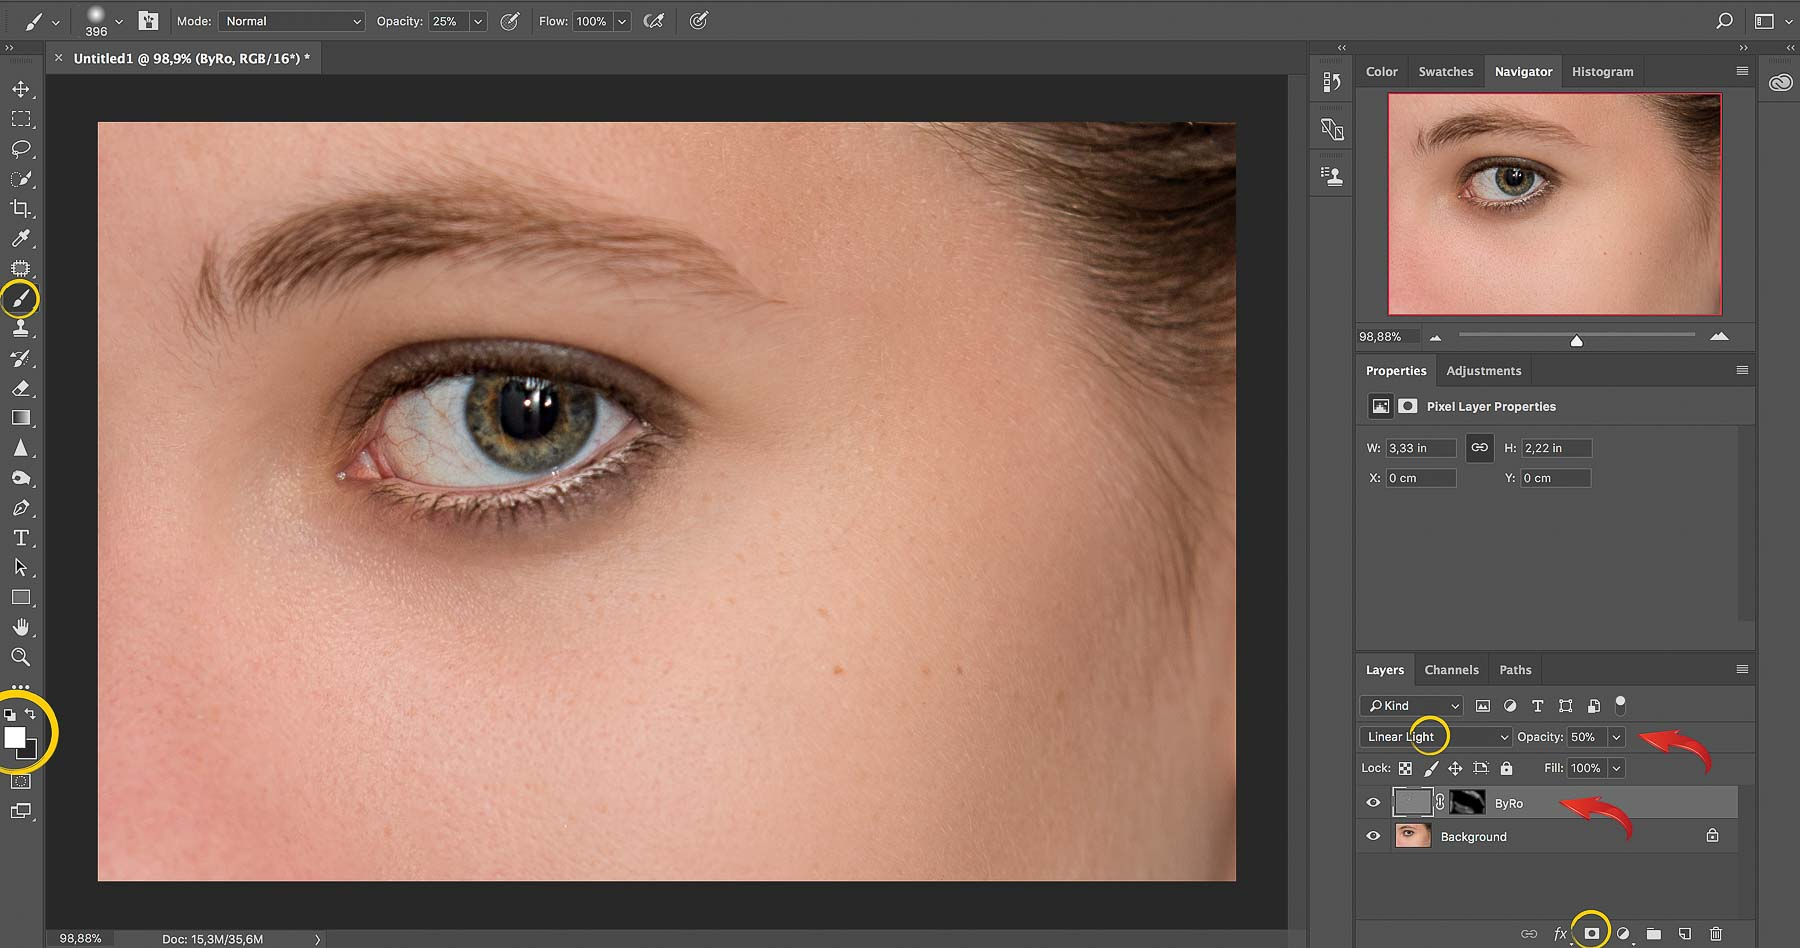 ByRo Method | Photoshop Skin Retouching • Portrait Retouching Workflow